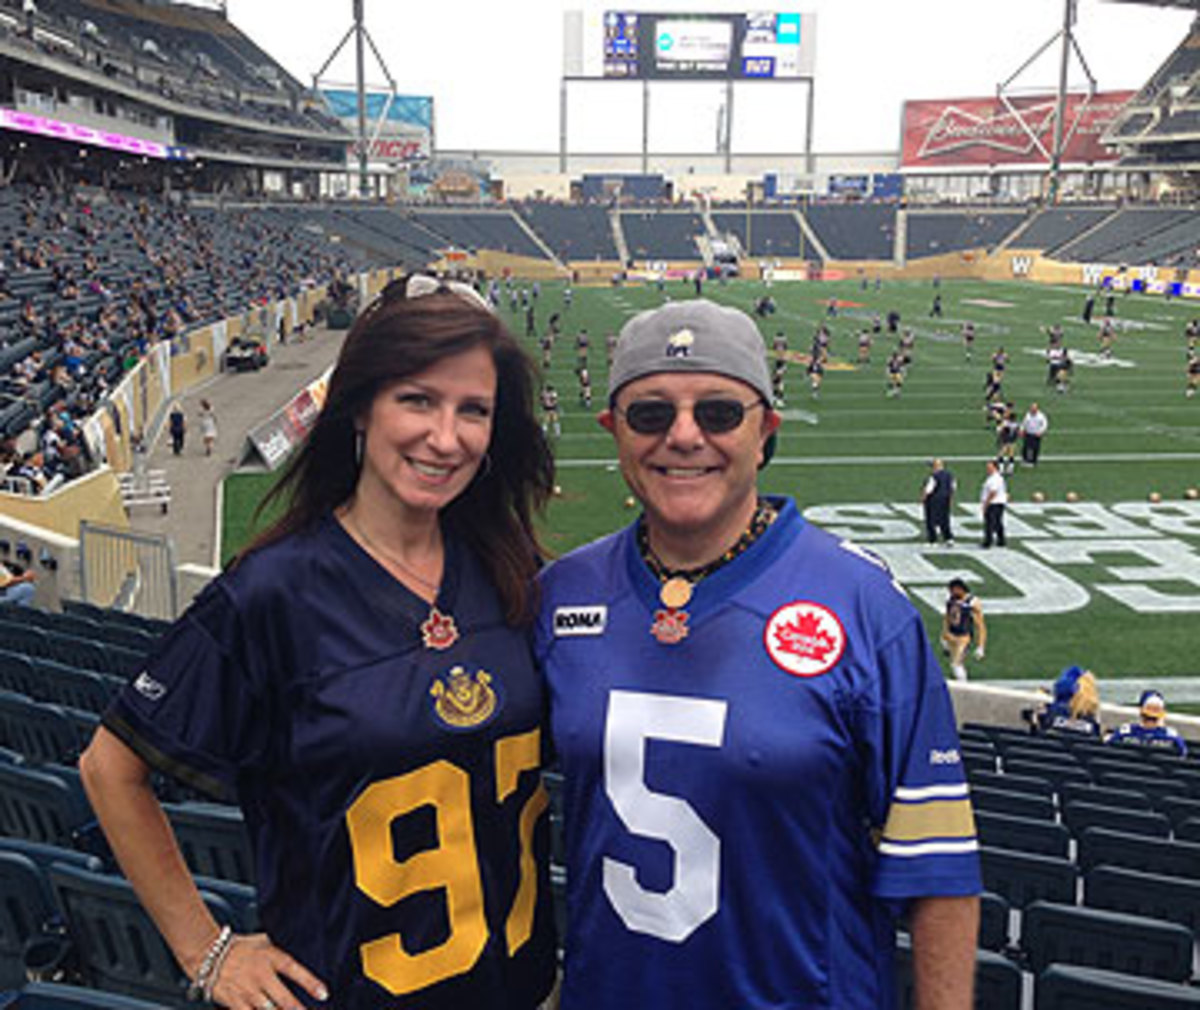 Becky Kaufmann and Chuck Duboff have had Bombers tickets in their families for more than 50 years each. (Photo by Jenny Vrentas)